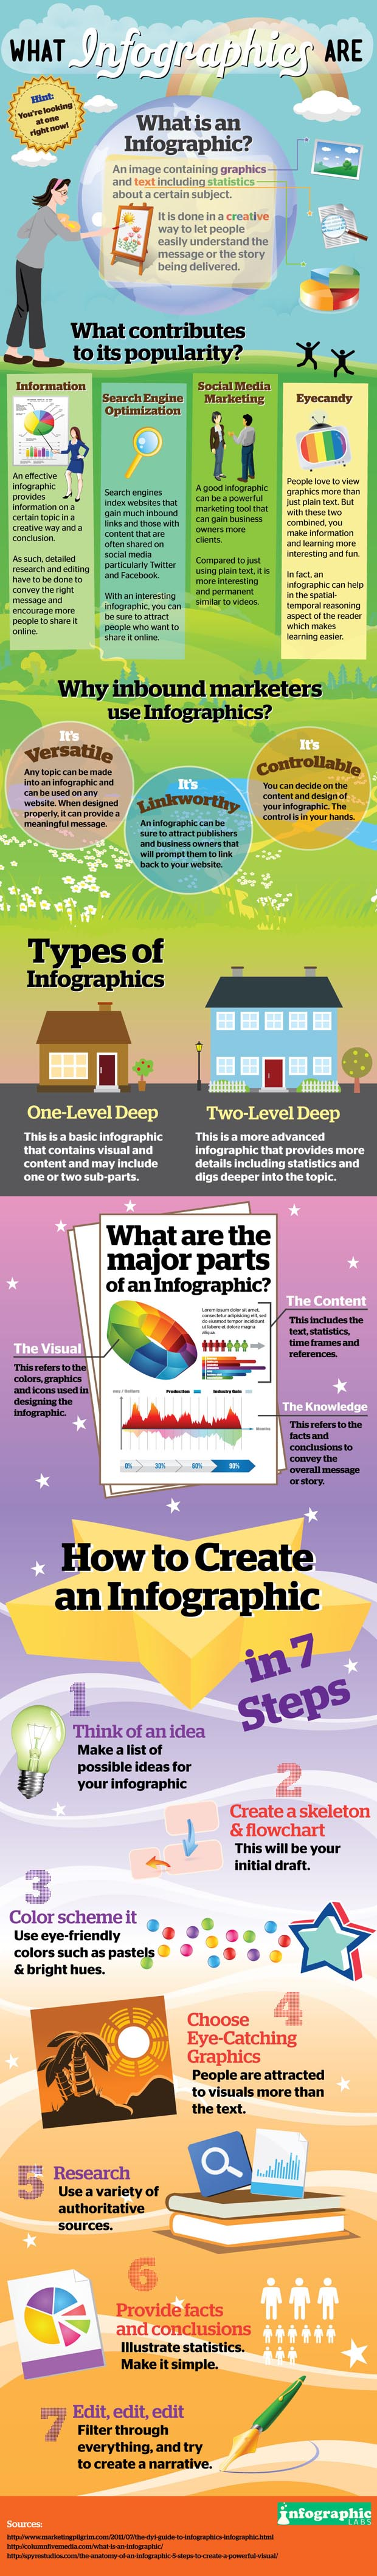 best infographic about infographics